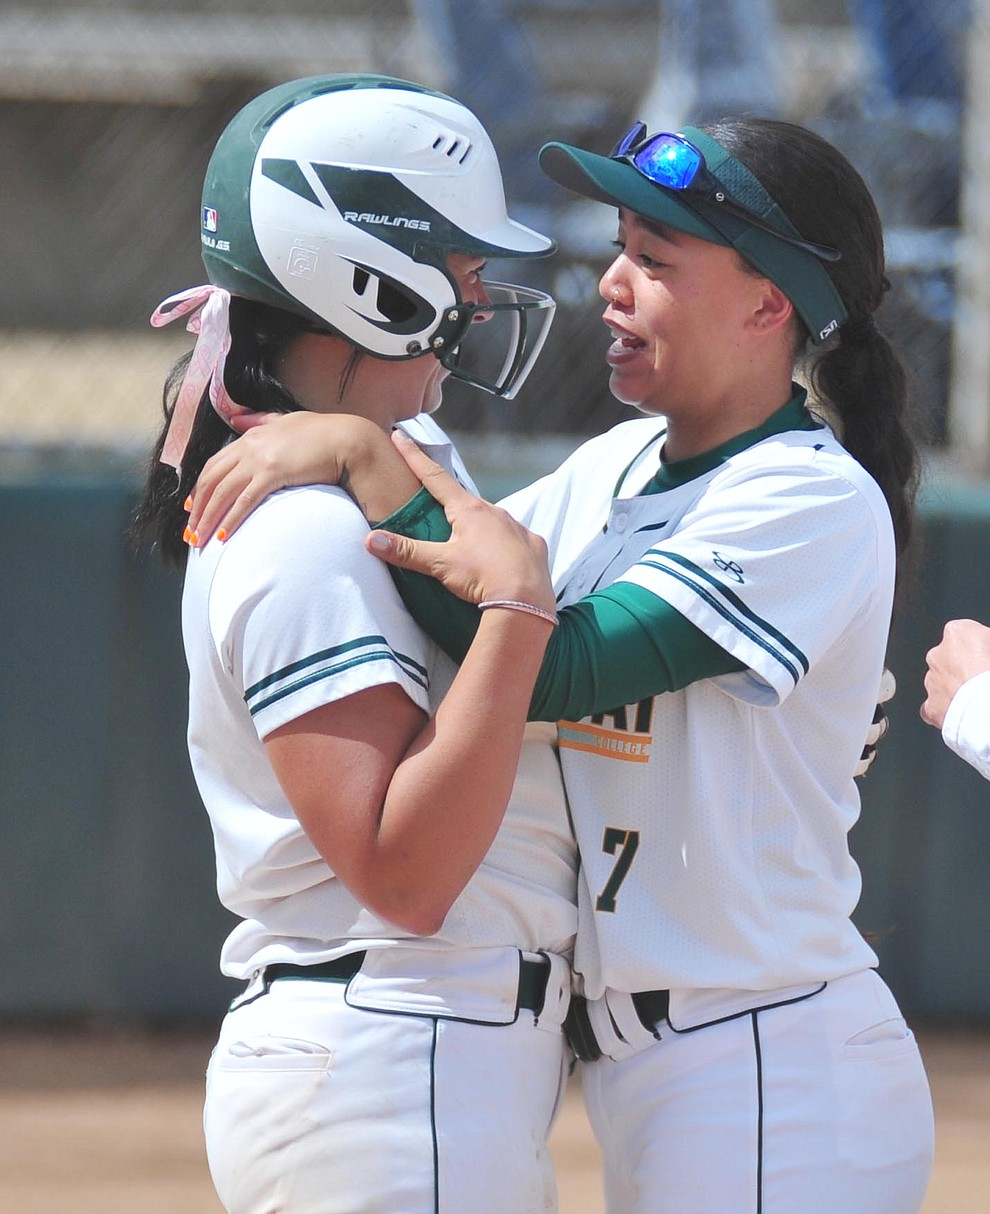 Yavapai's Kylie Brown gets congratulated by Neenah Pangilinan after Brown's two-run walk off homer in the first game of a double header against the Chandler Gilbert Coyotes Tuesday, March 19, 2018 in Prescott.